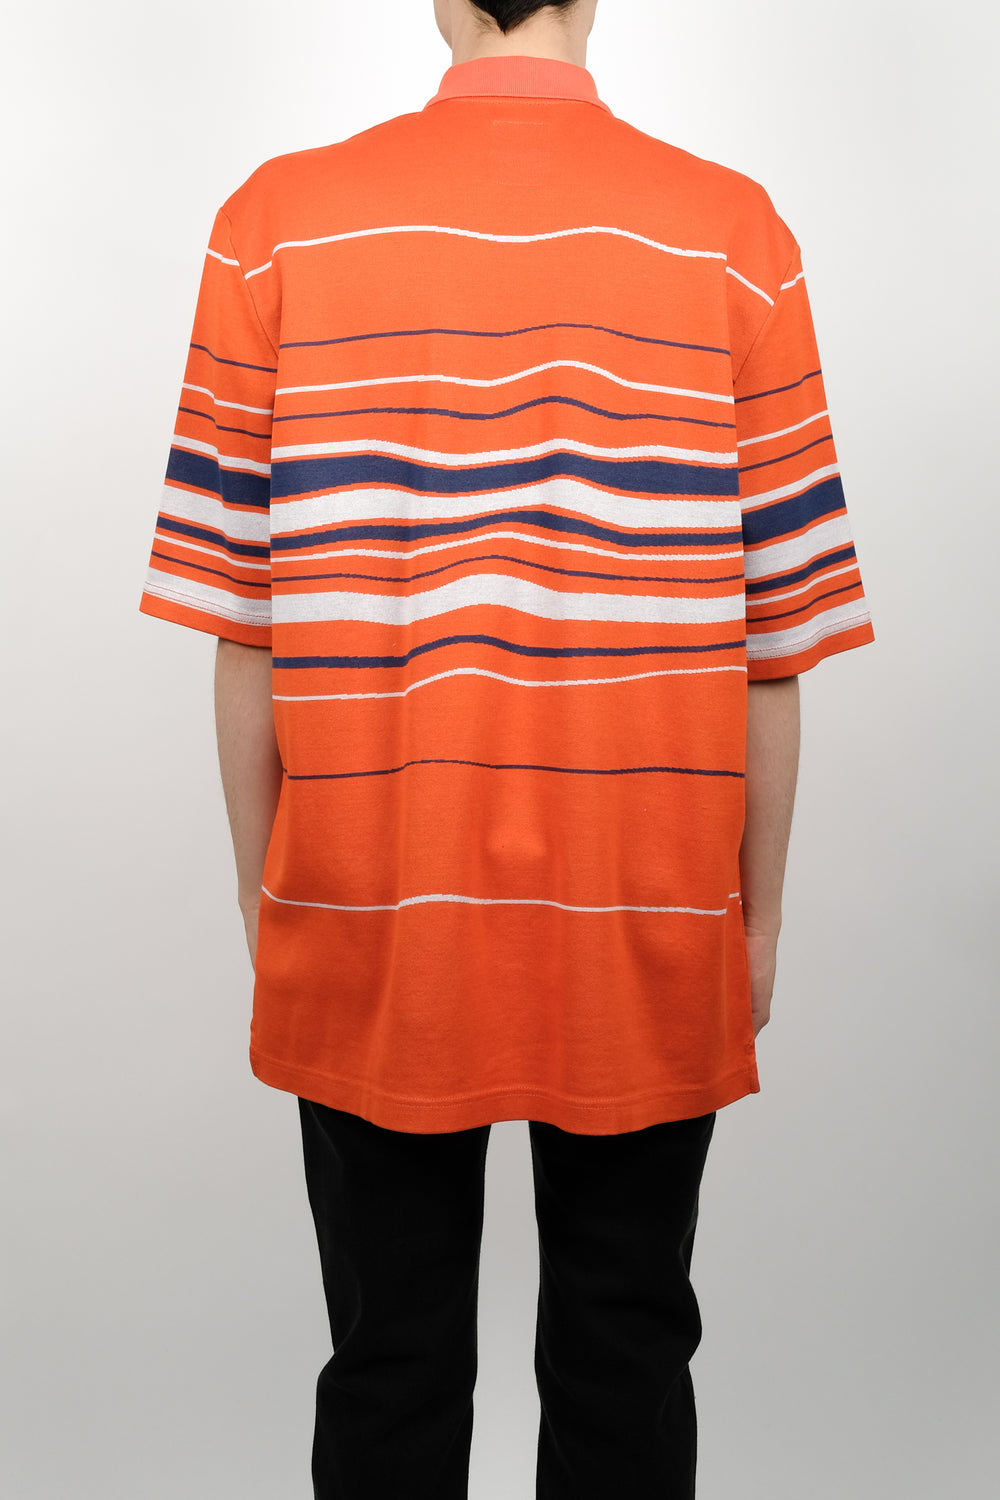 NAPA By Martine Rose Ego S/S Polo In Fantasy Orange